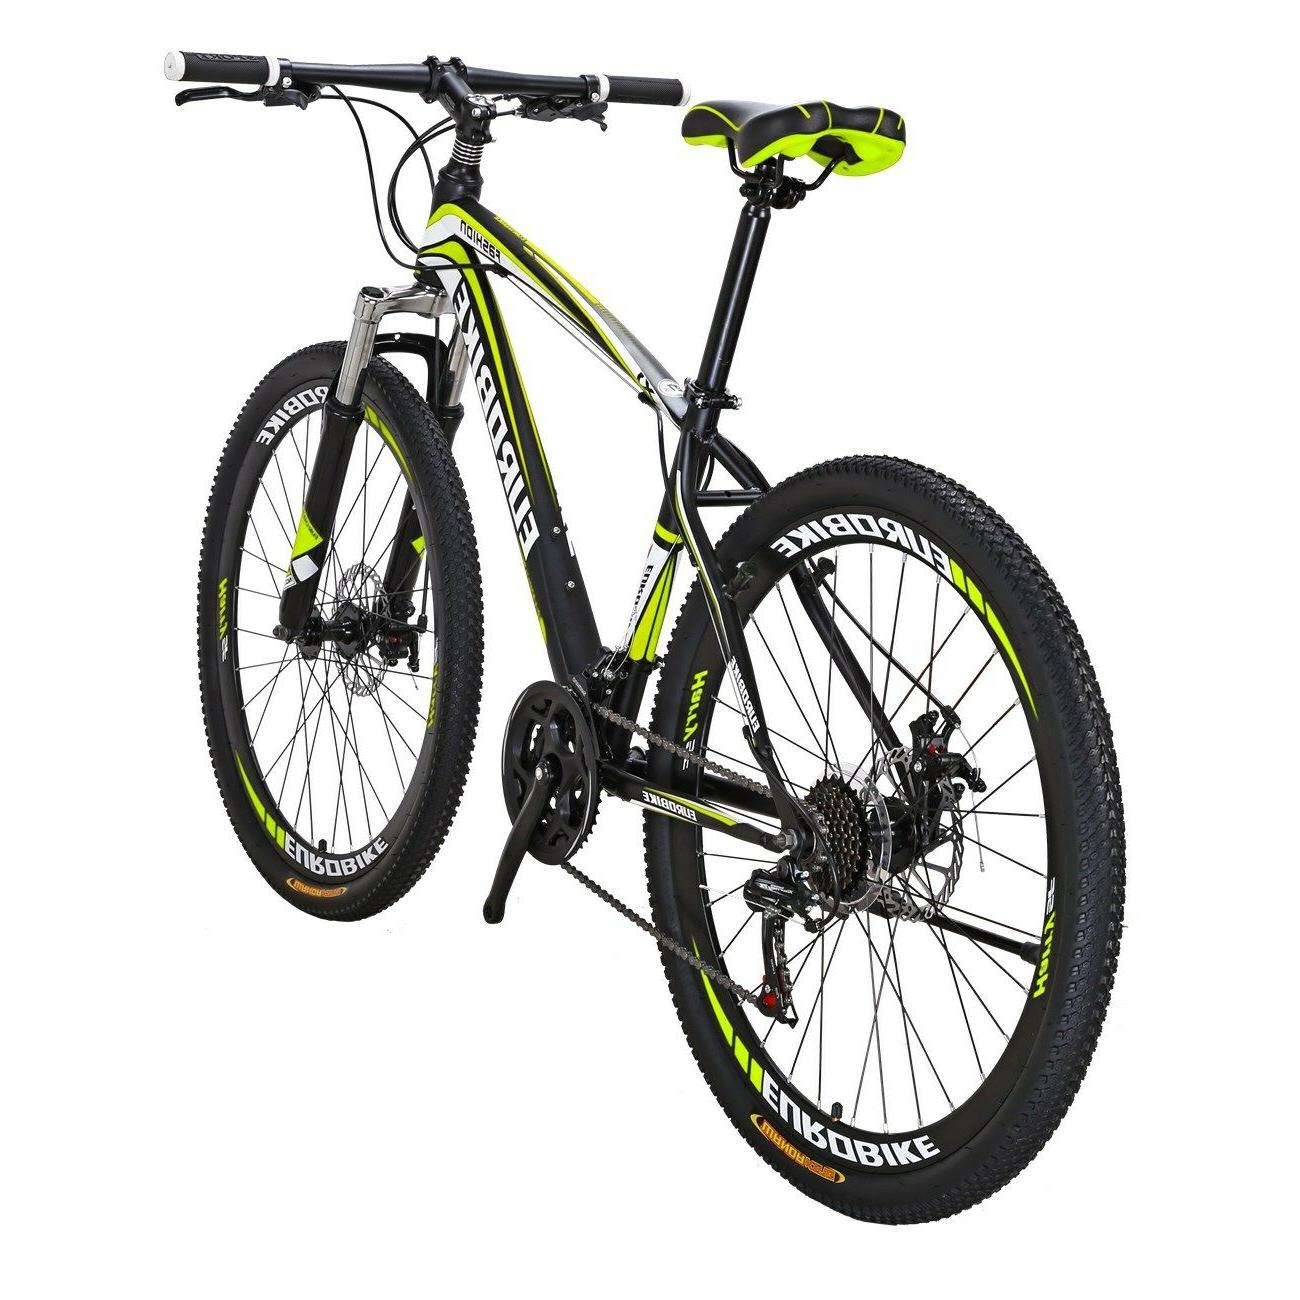 "Mountain Bike Front Shimano Speed Bikes 27.5"" bicycle"